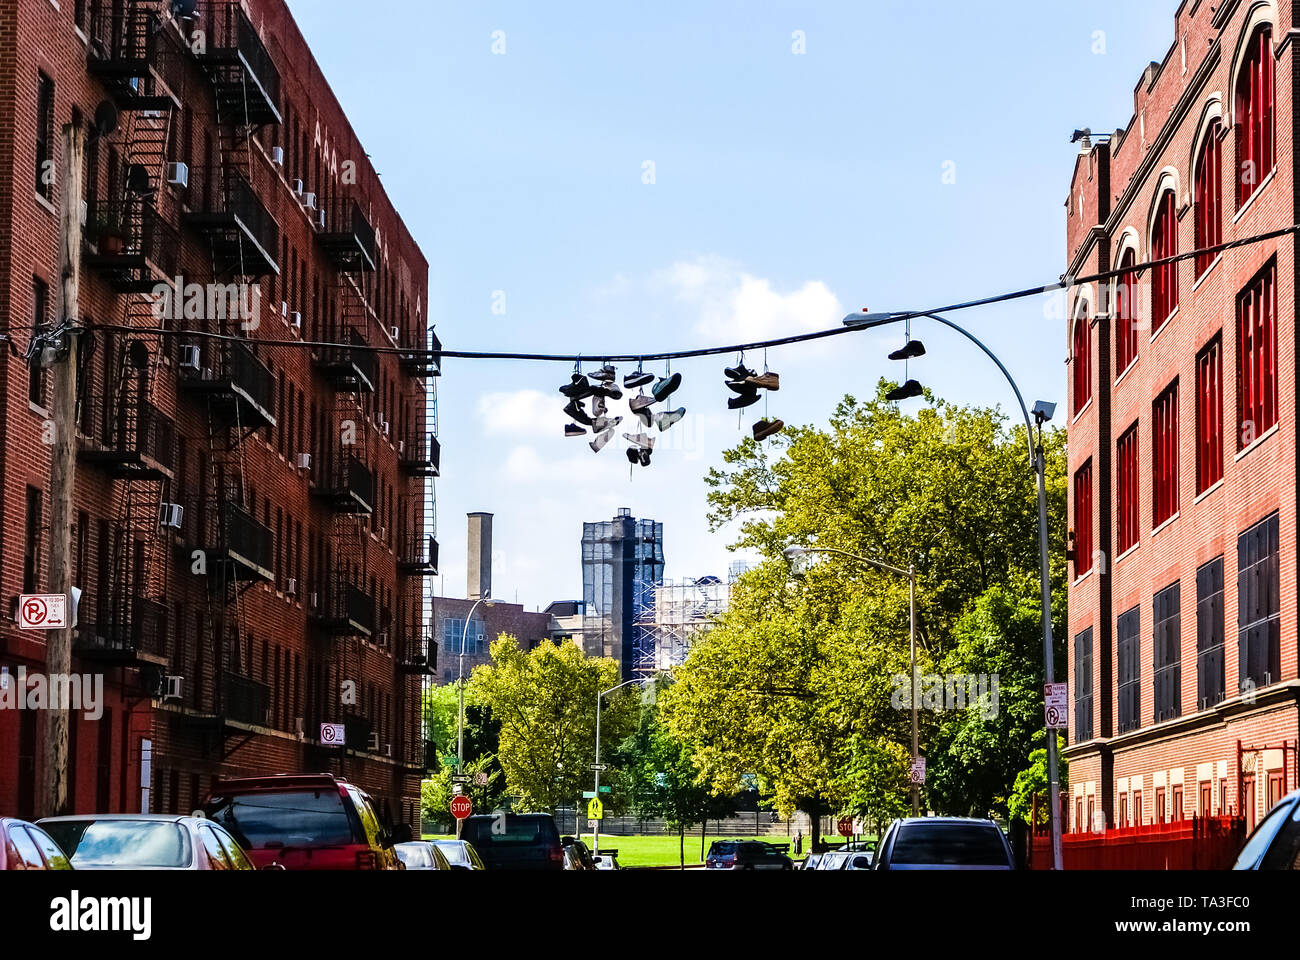 New York, USA - August 15, 2008: Pairs of sneakers hanging by street gangs from power lines on the streets of an American city. - Stock Image